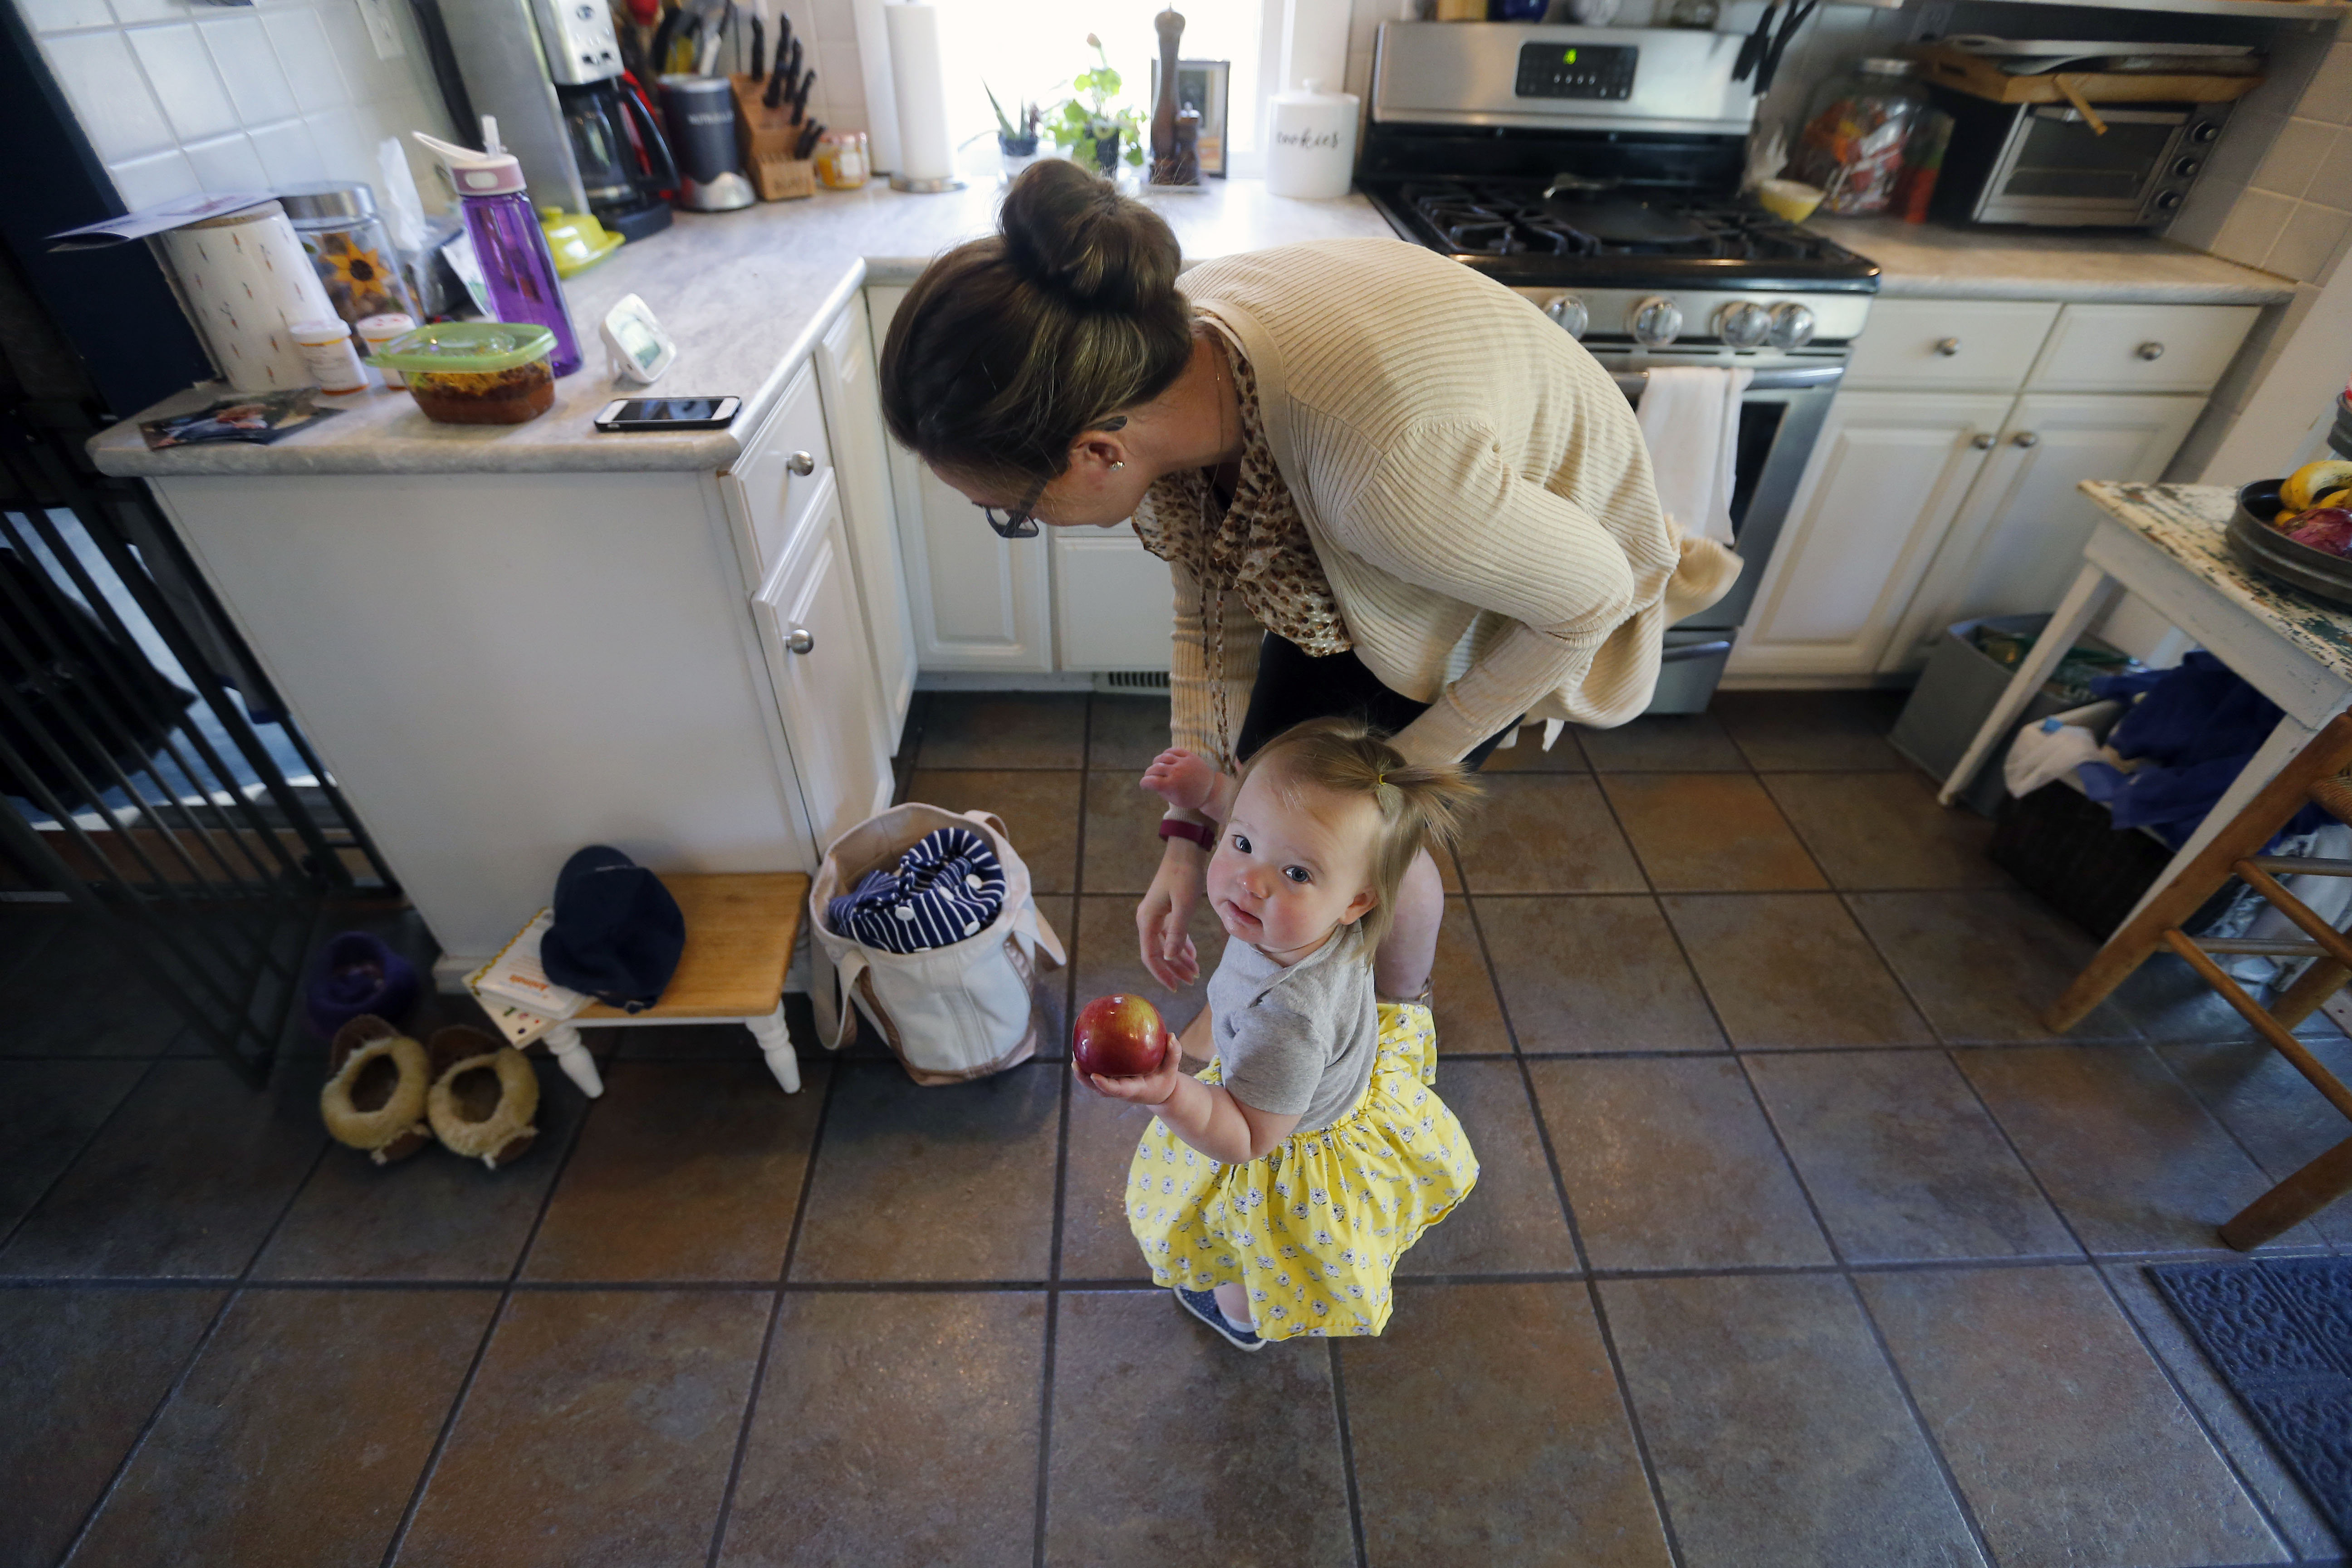 Working parents struggle in Erie County's 'child care